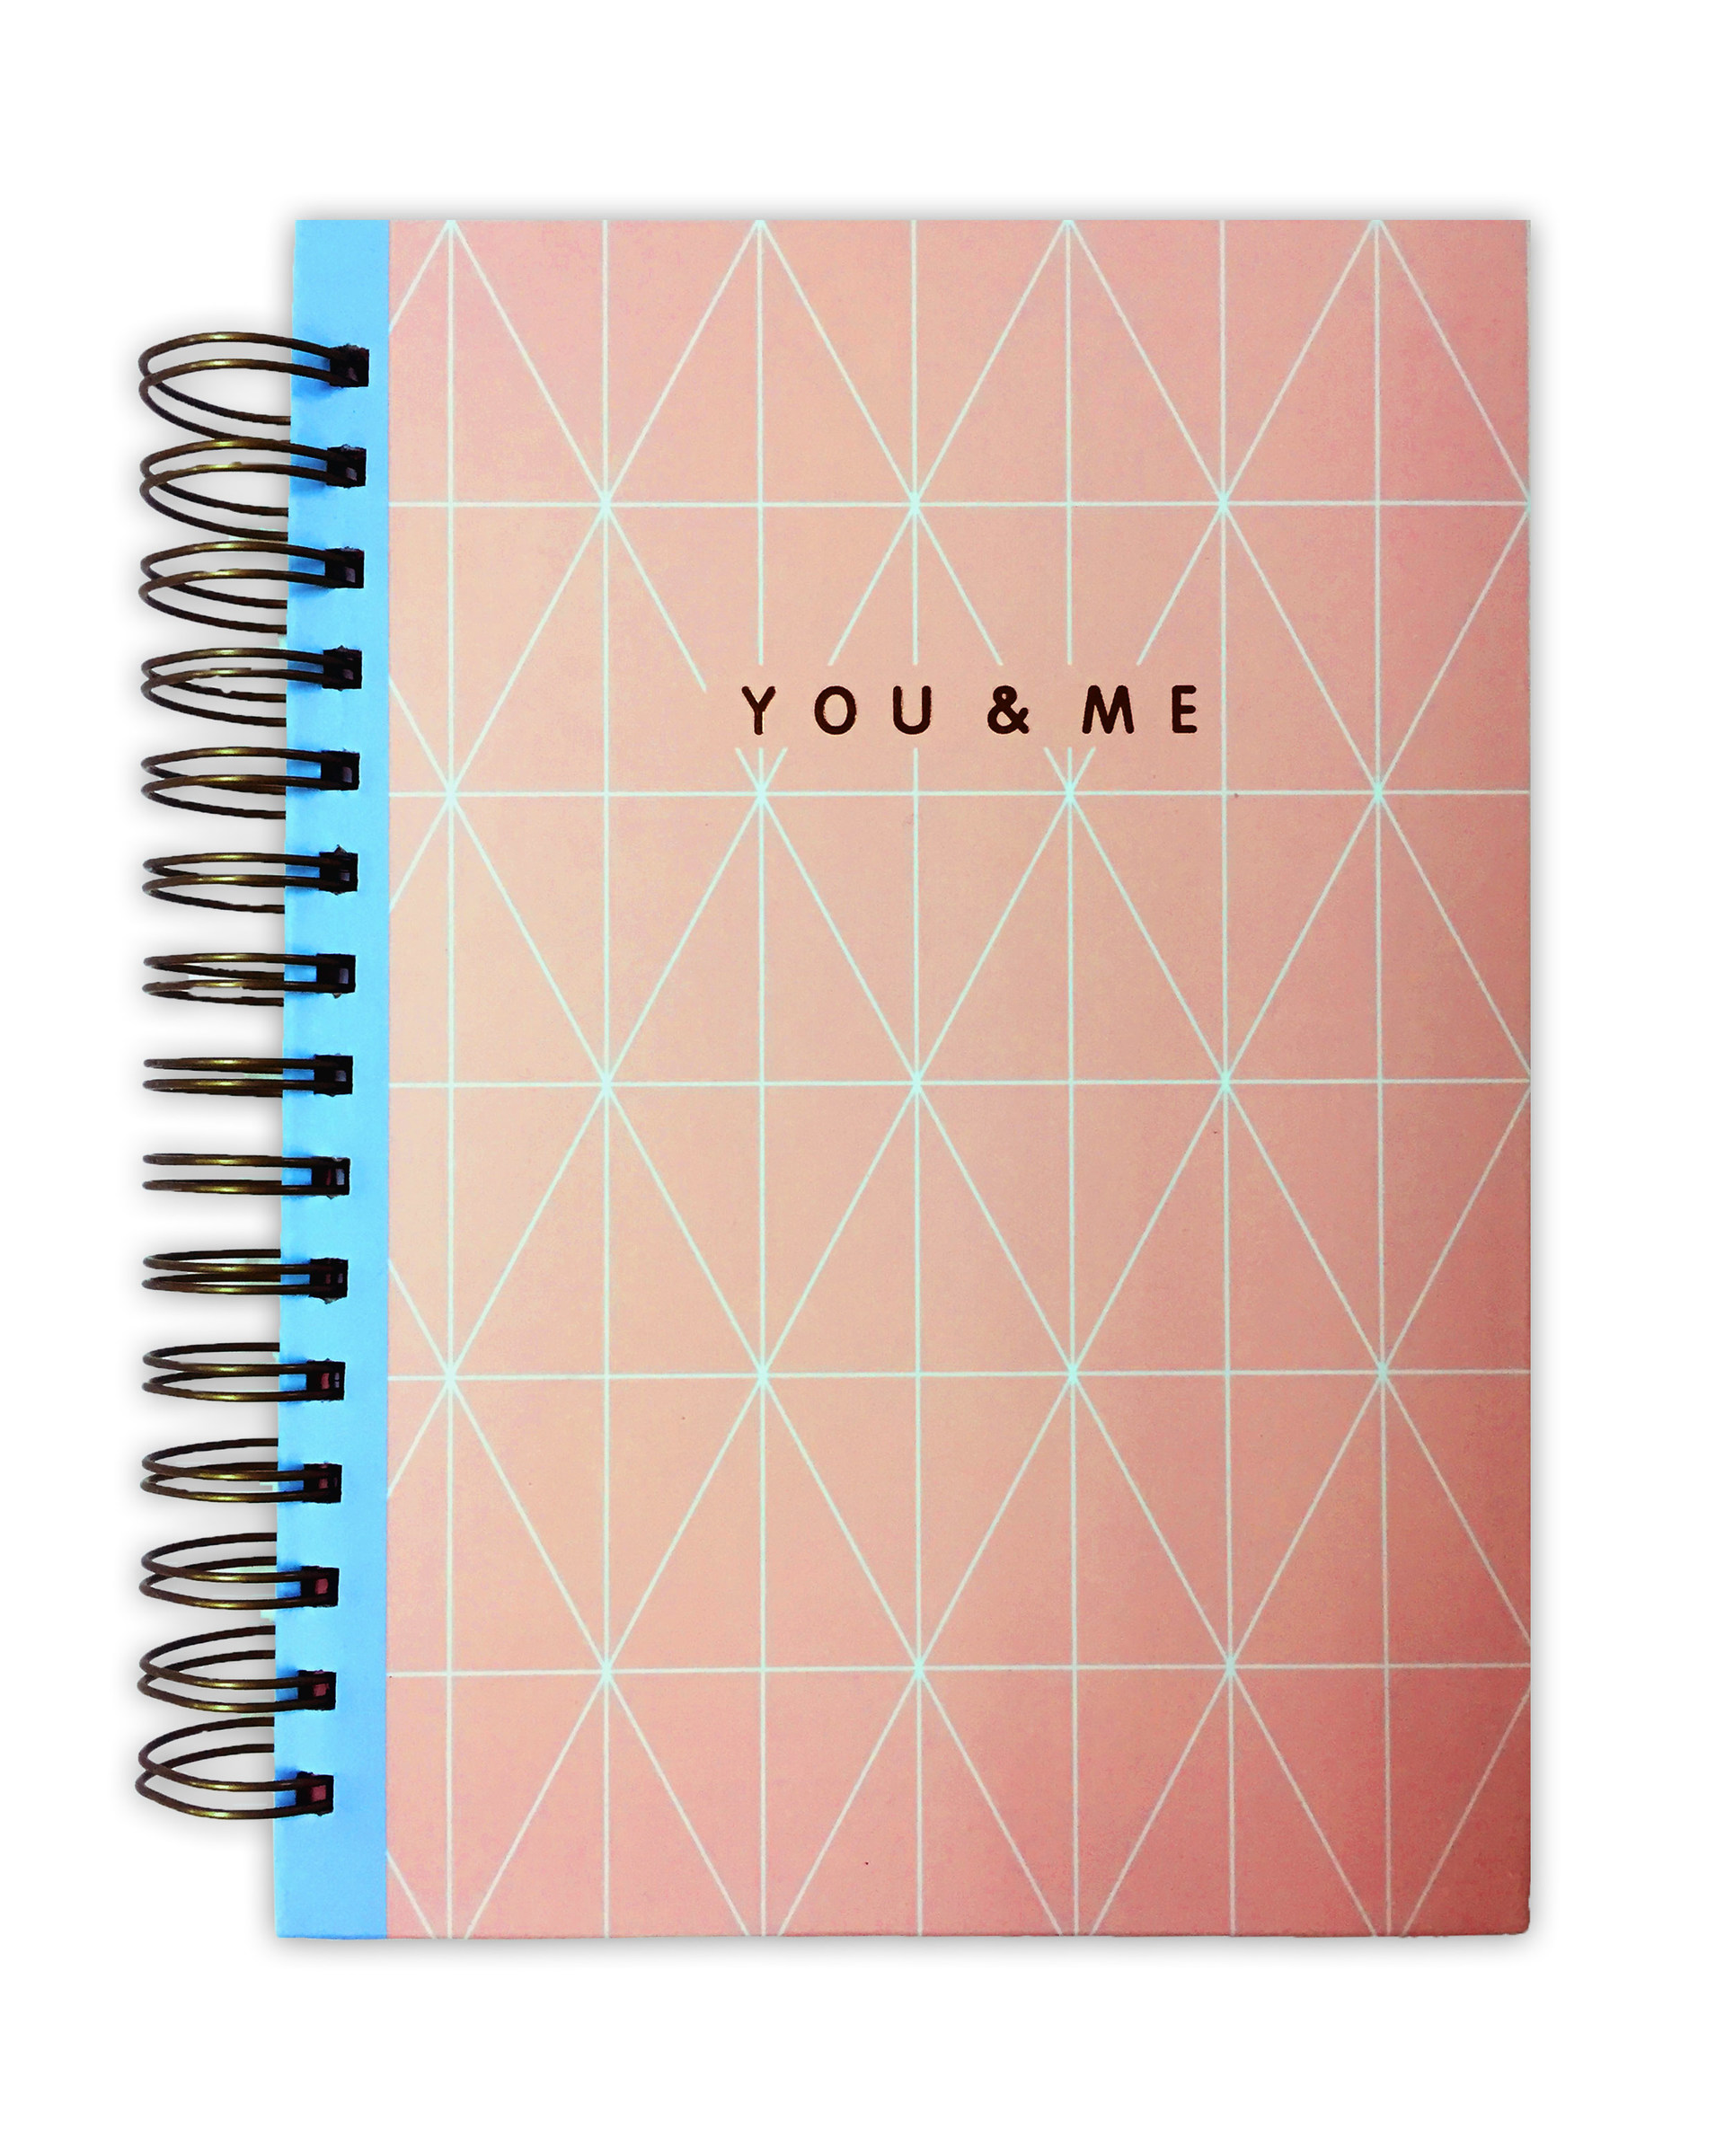 Hardcover-spiral-journal-(you-&-me)-pink.jpg